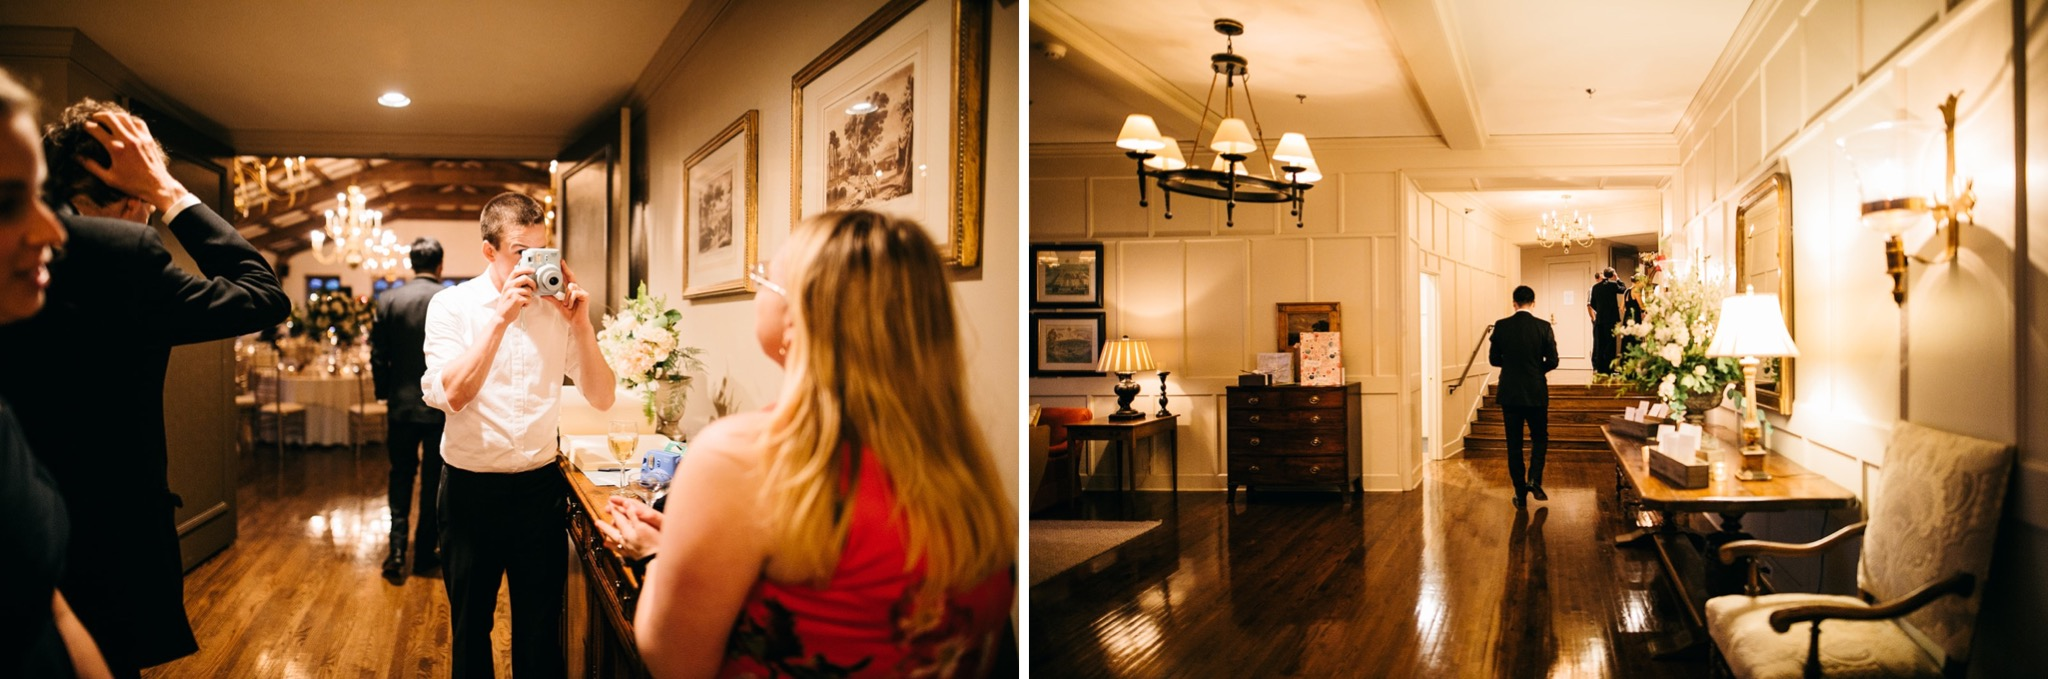 man photographs a woman in a red dress in Lookout Mountain Club's entry hallway